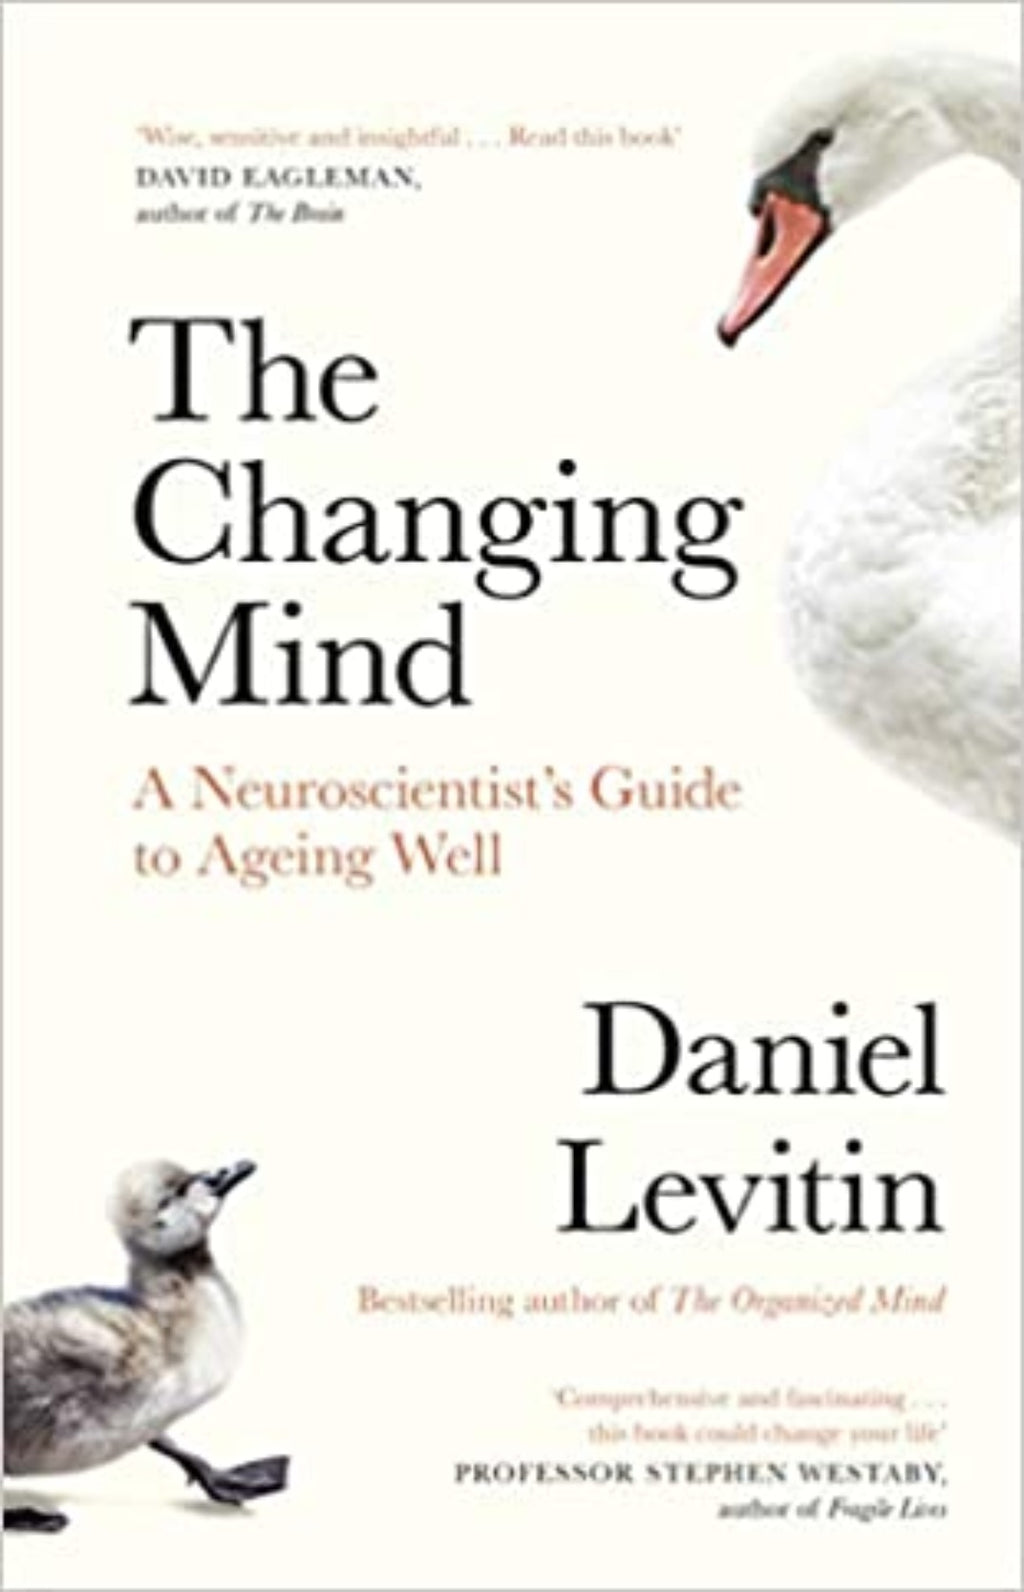 The Changing Mind : A Neuroscientist's Guide to Ageing Well